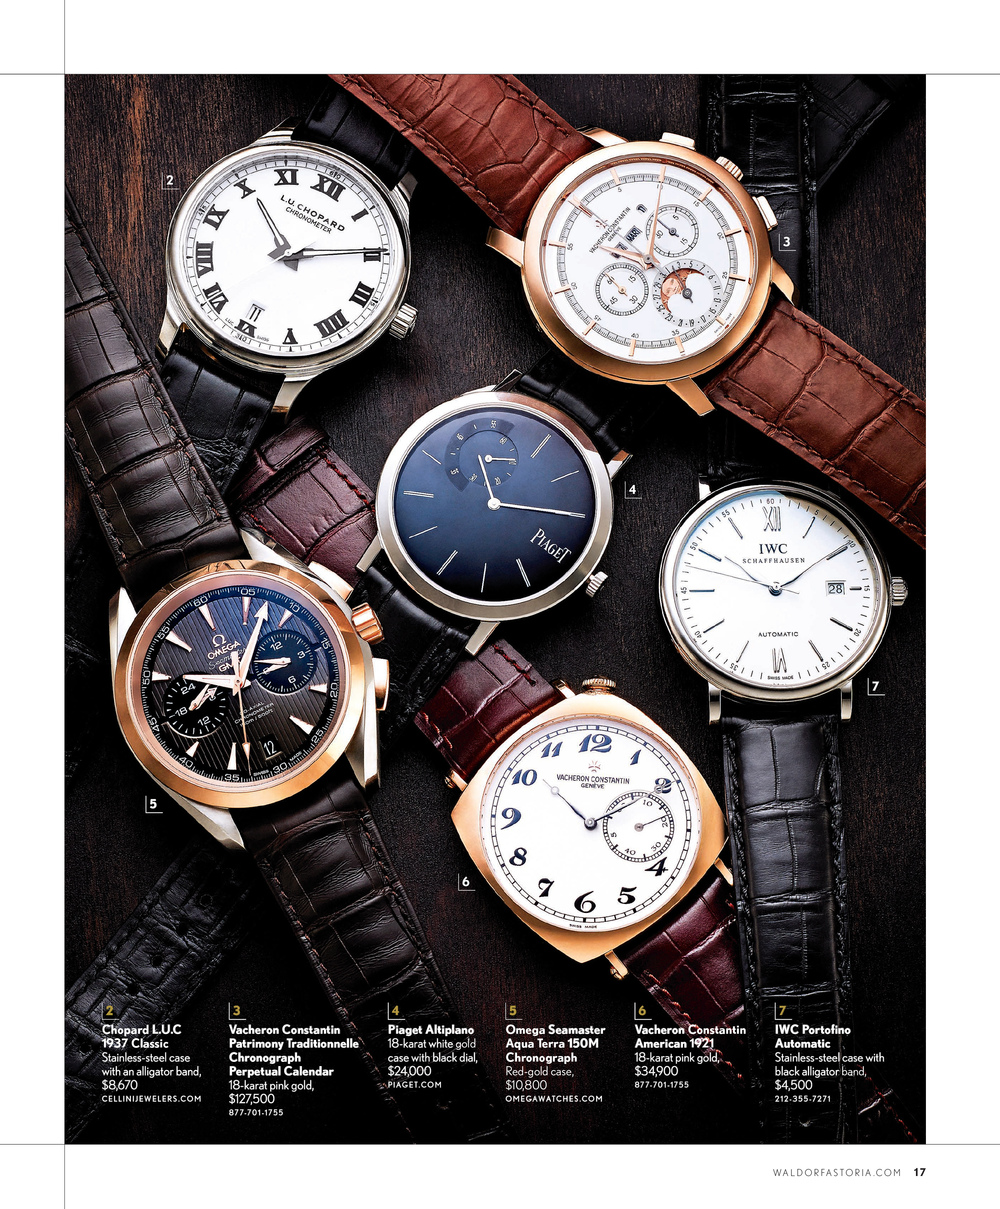 WA_2_2014_Watches-2.jpg